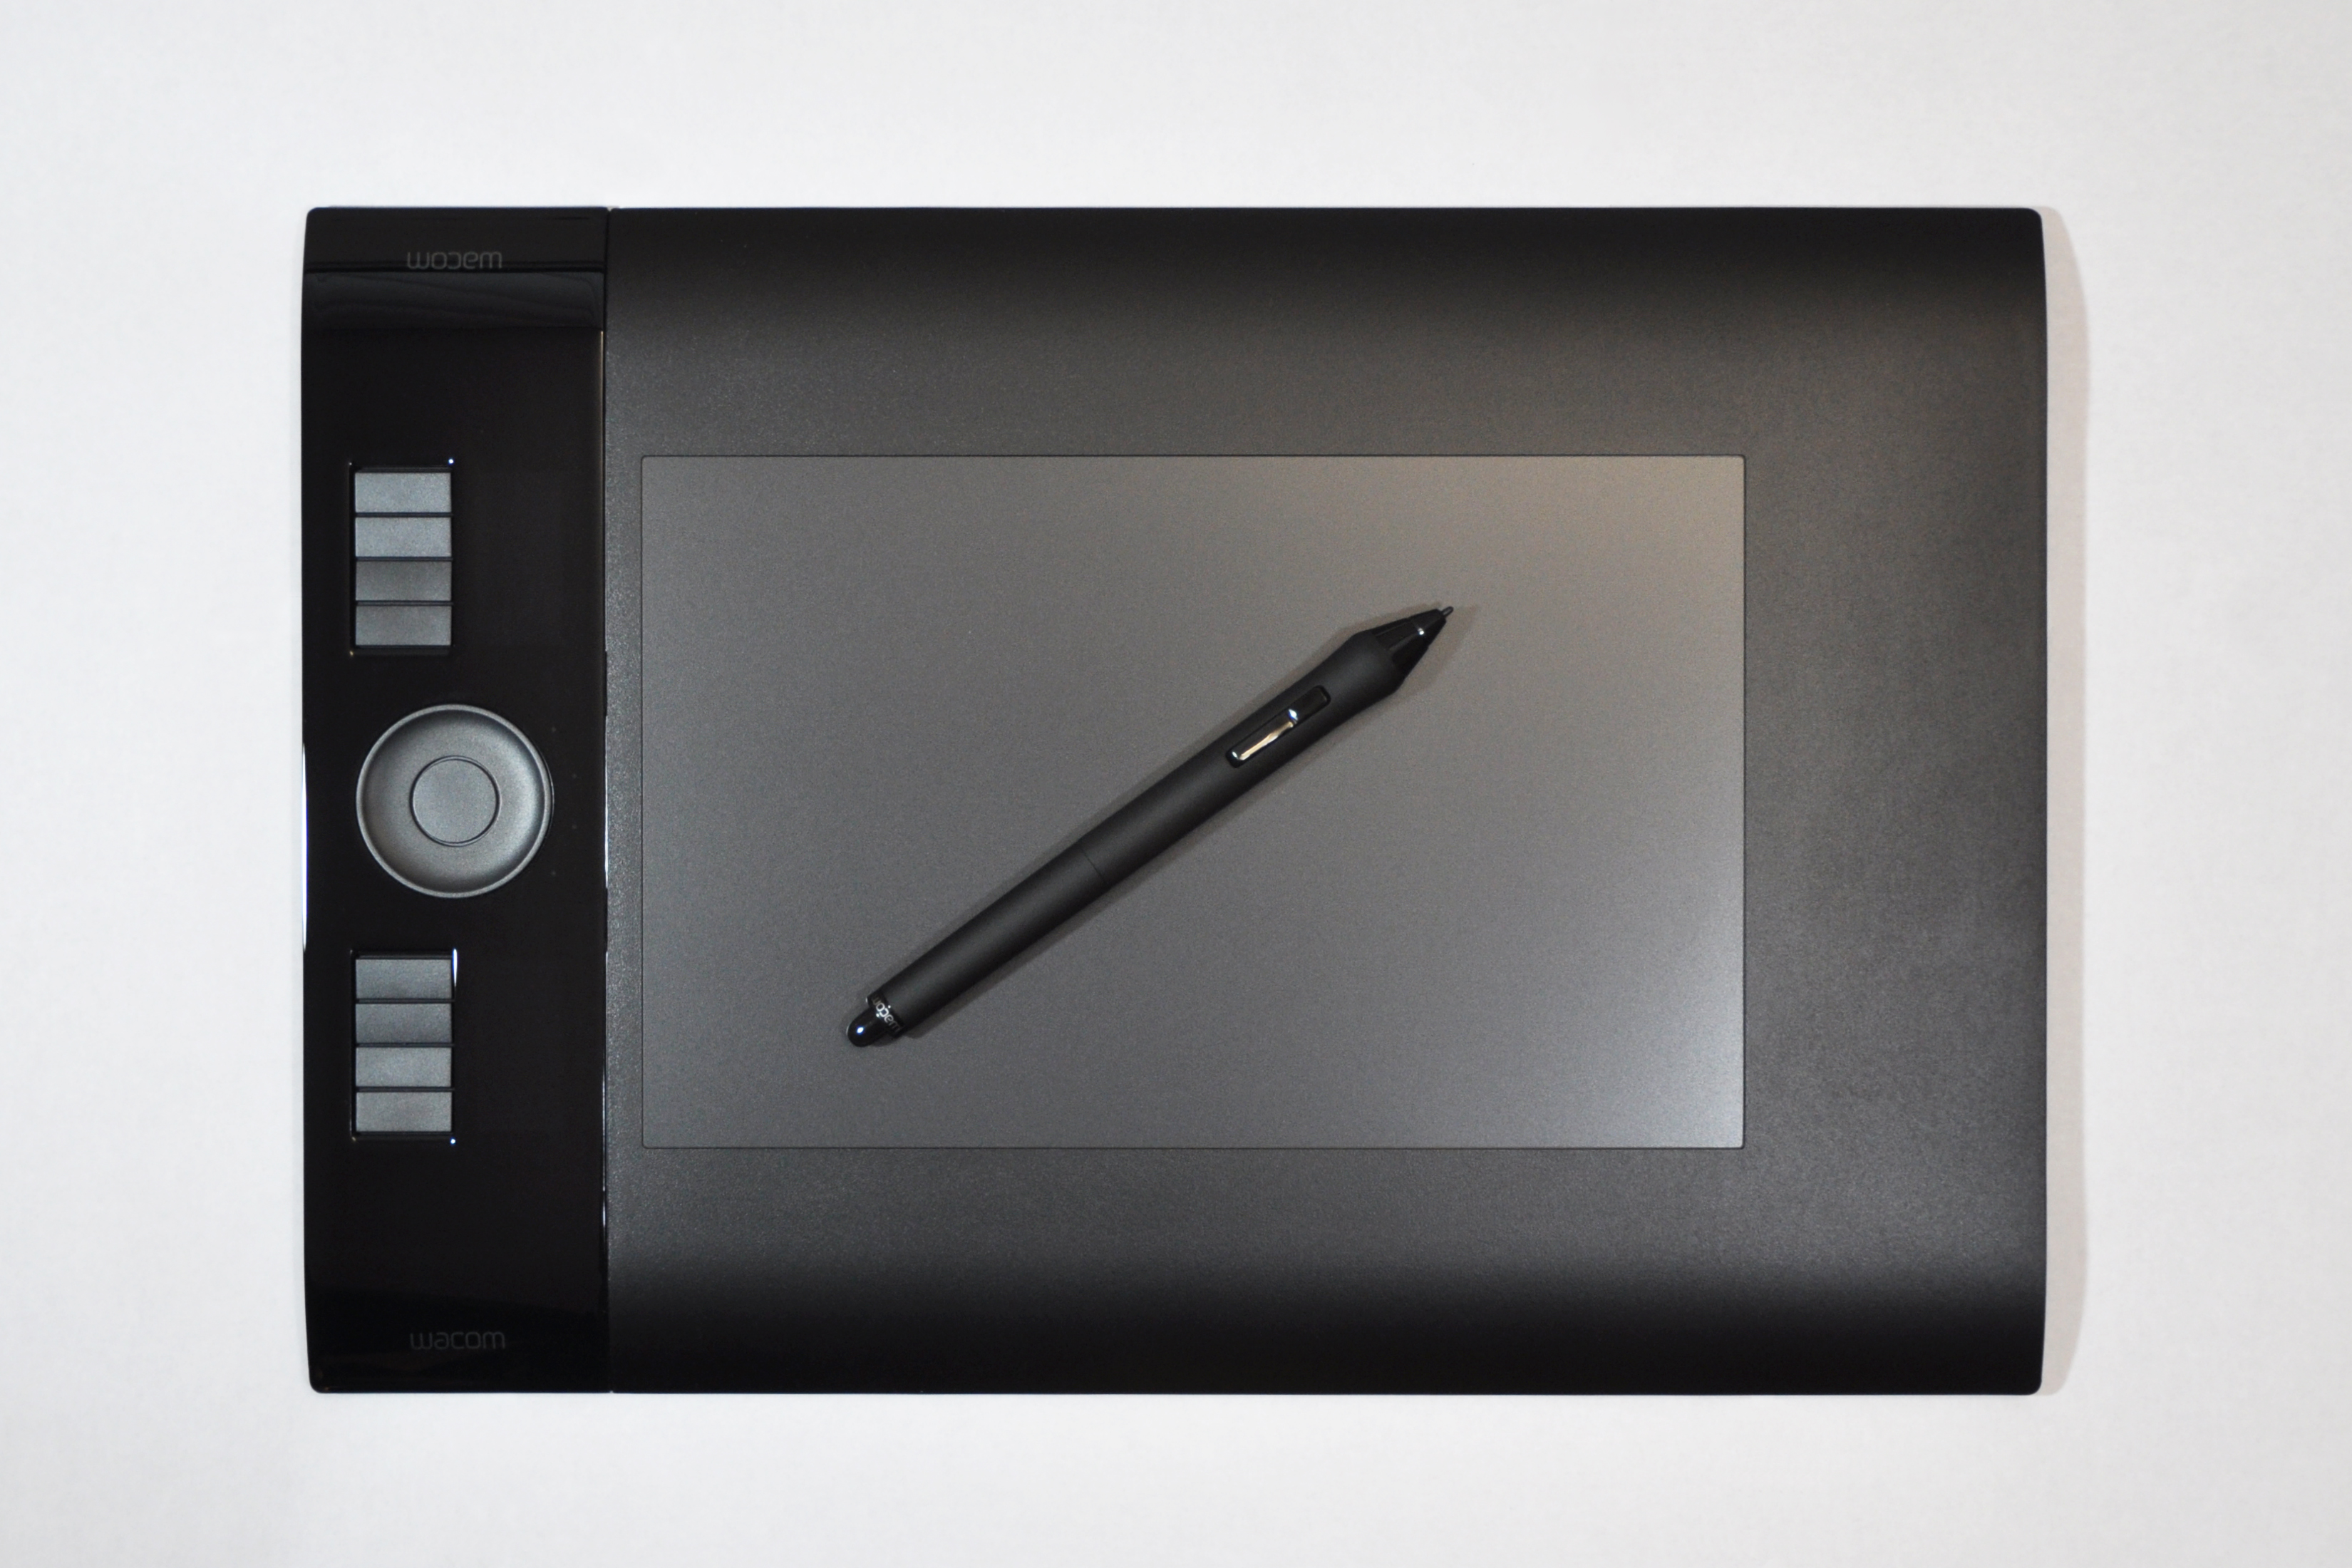 Description wacom intuos4 pen tablet